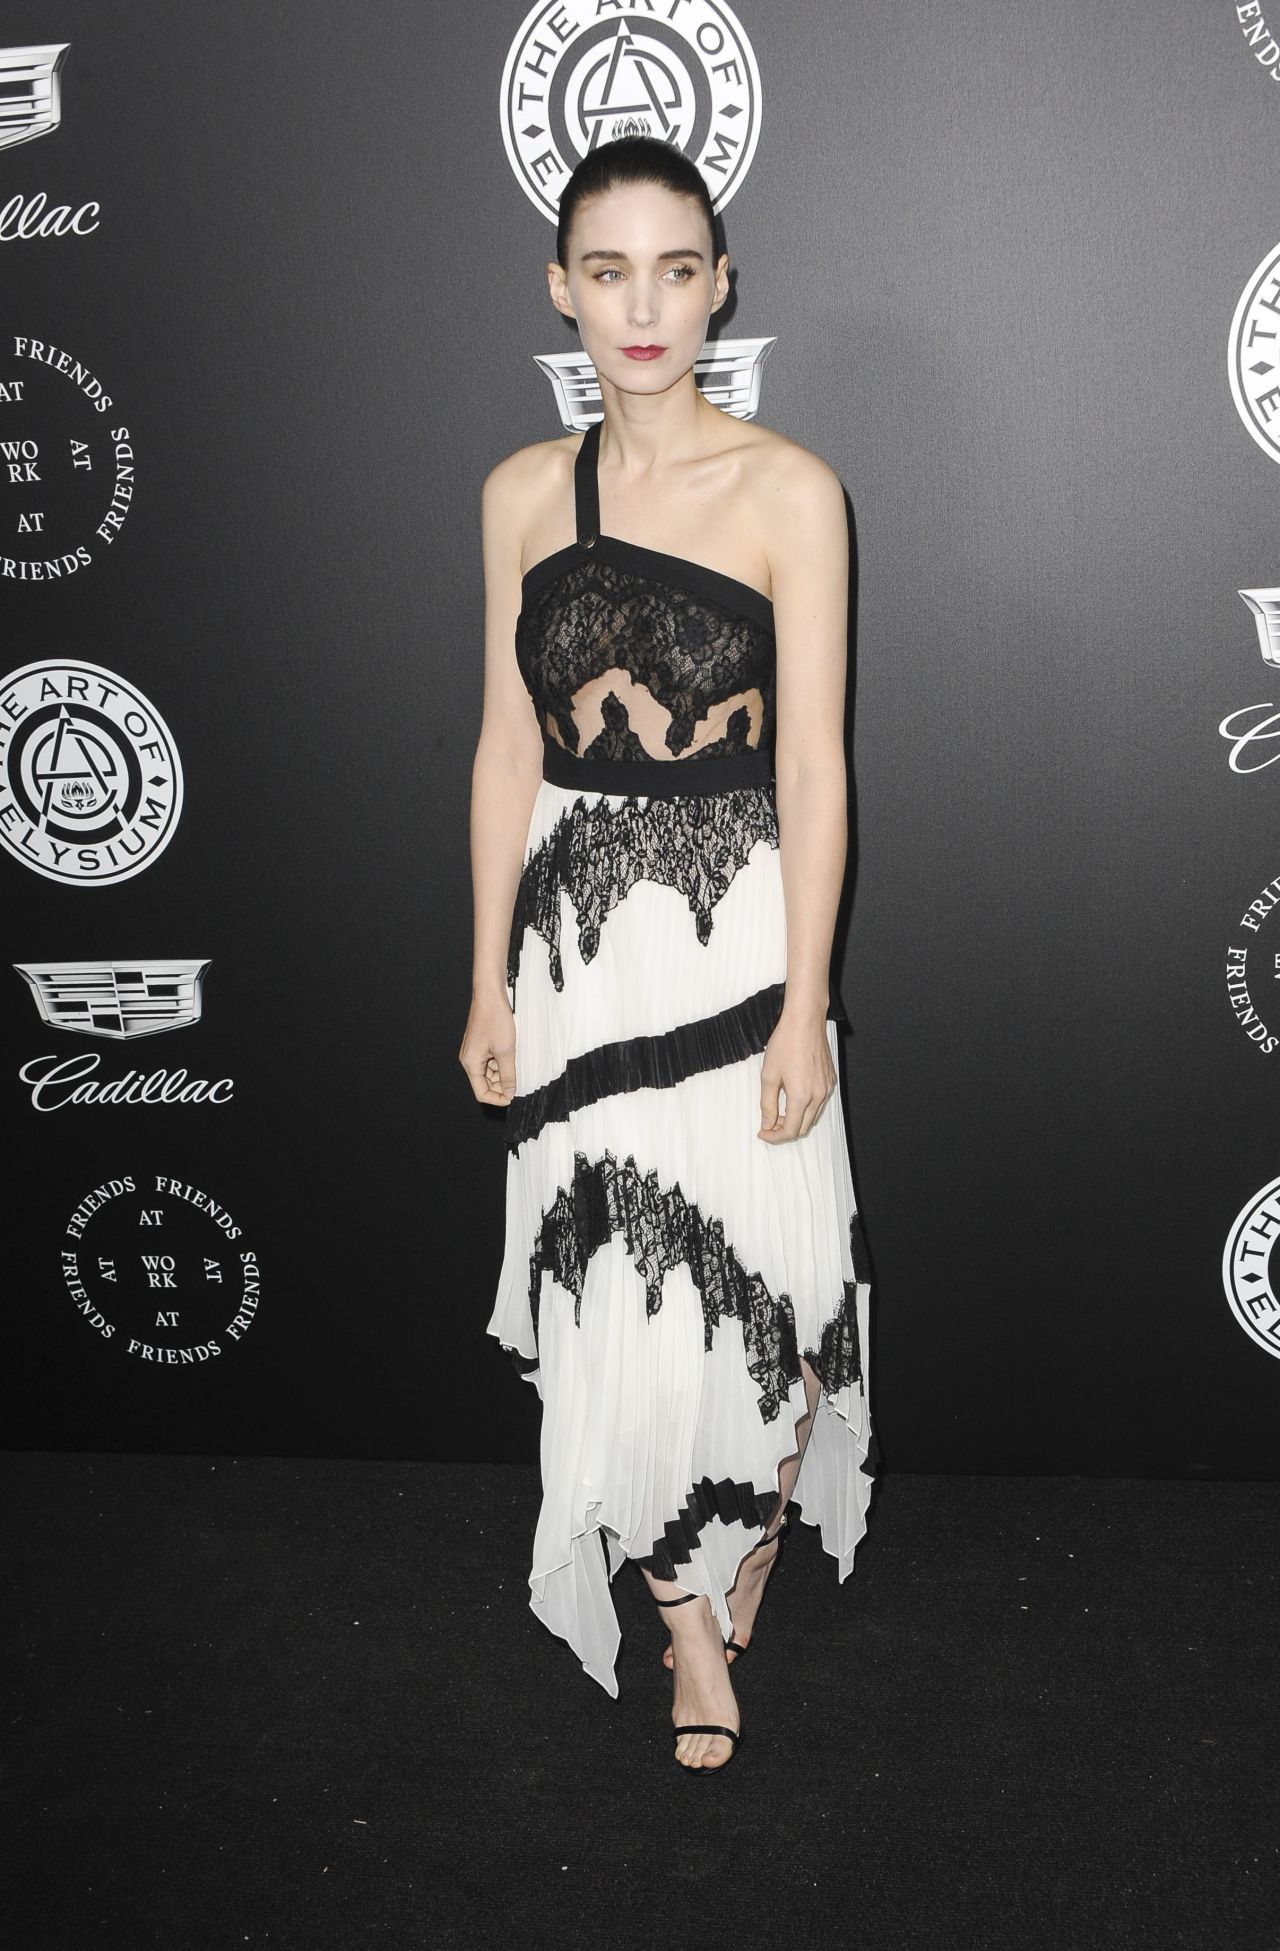 http://celebmafia.com/wp-content/uploads/2018/01/rooney-mara-the-art-of-elysium-black-tie-artistic-eperience-heaven-in-santa-monica-8.jpg